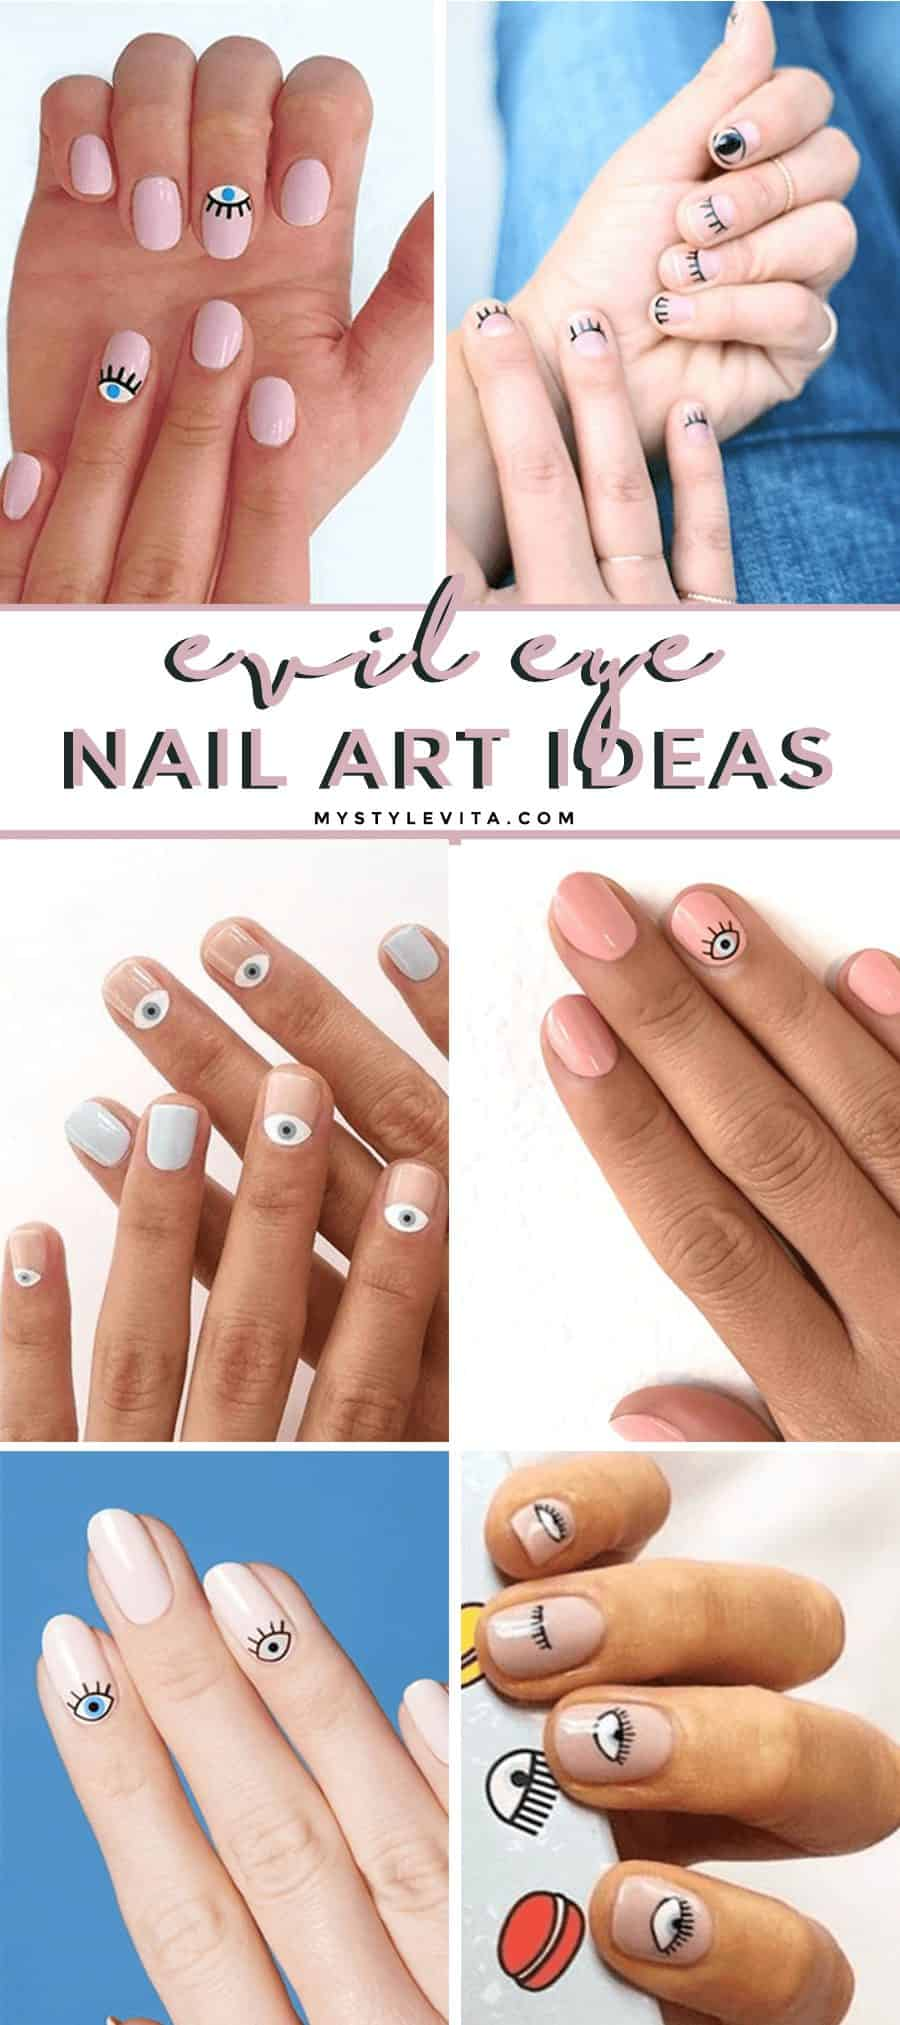 Evil Eye Nail Art Trend I'm Obsessed With